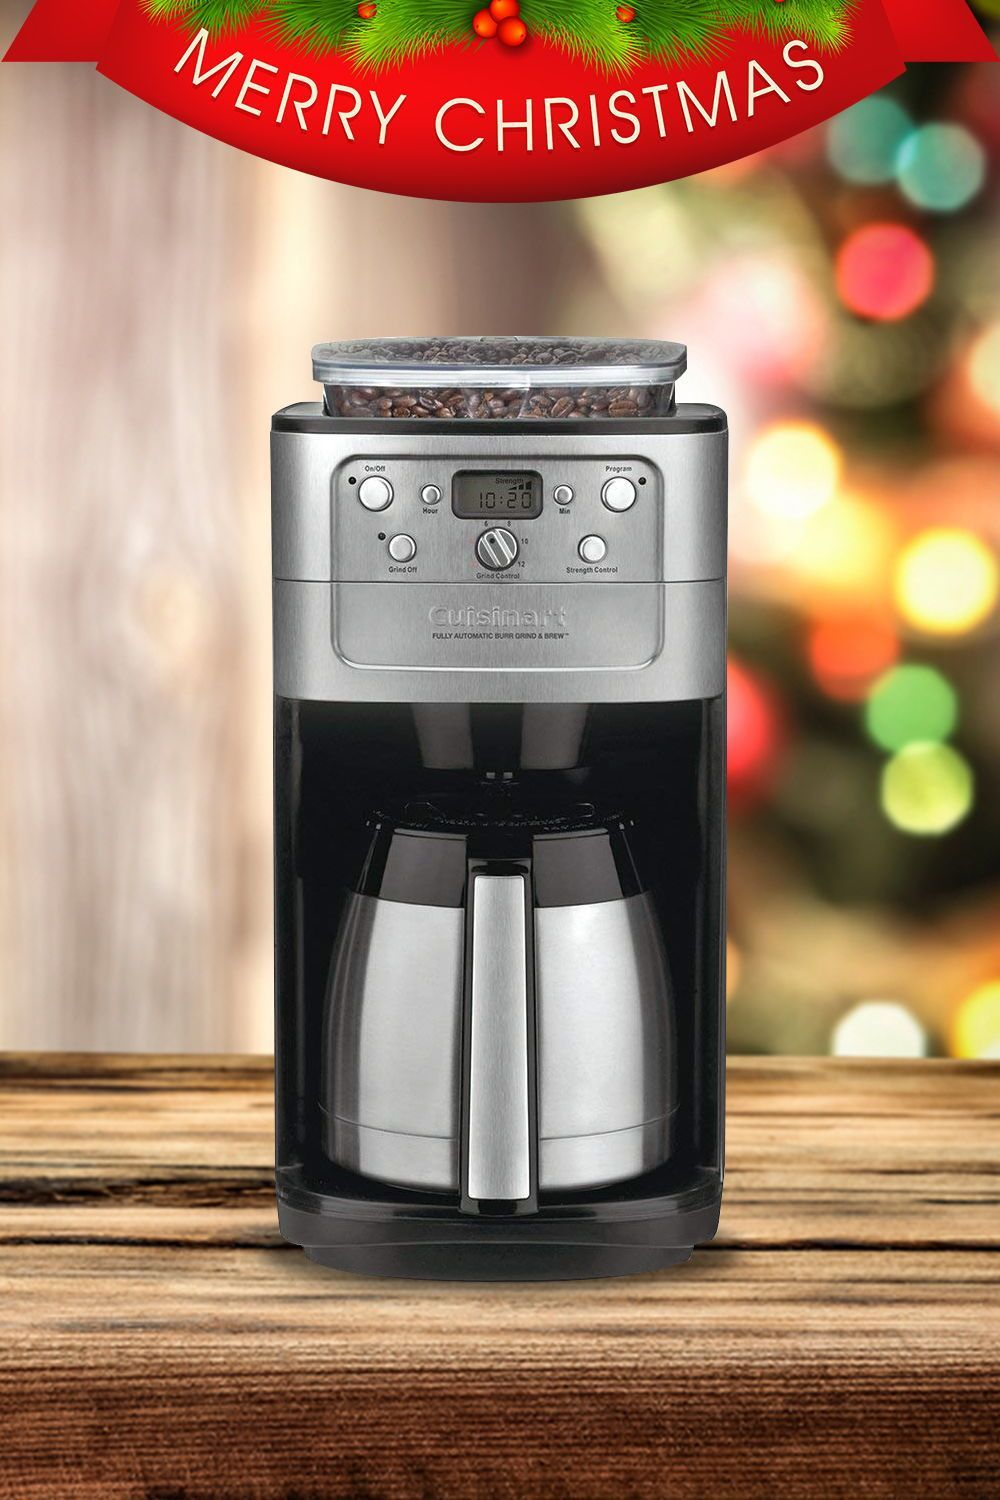 Cuisinart dcc3200 14cup cuisinart drip coffee makers